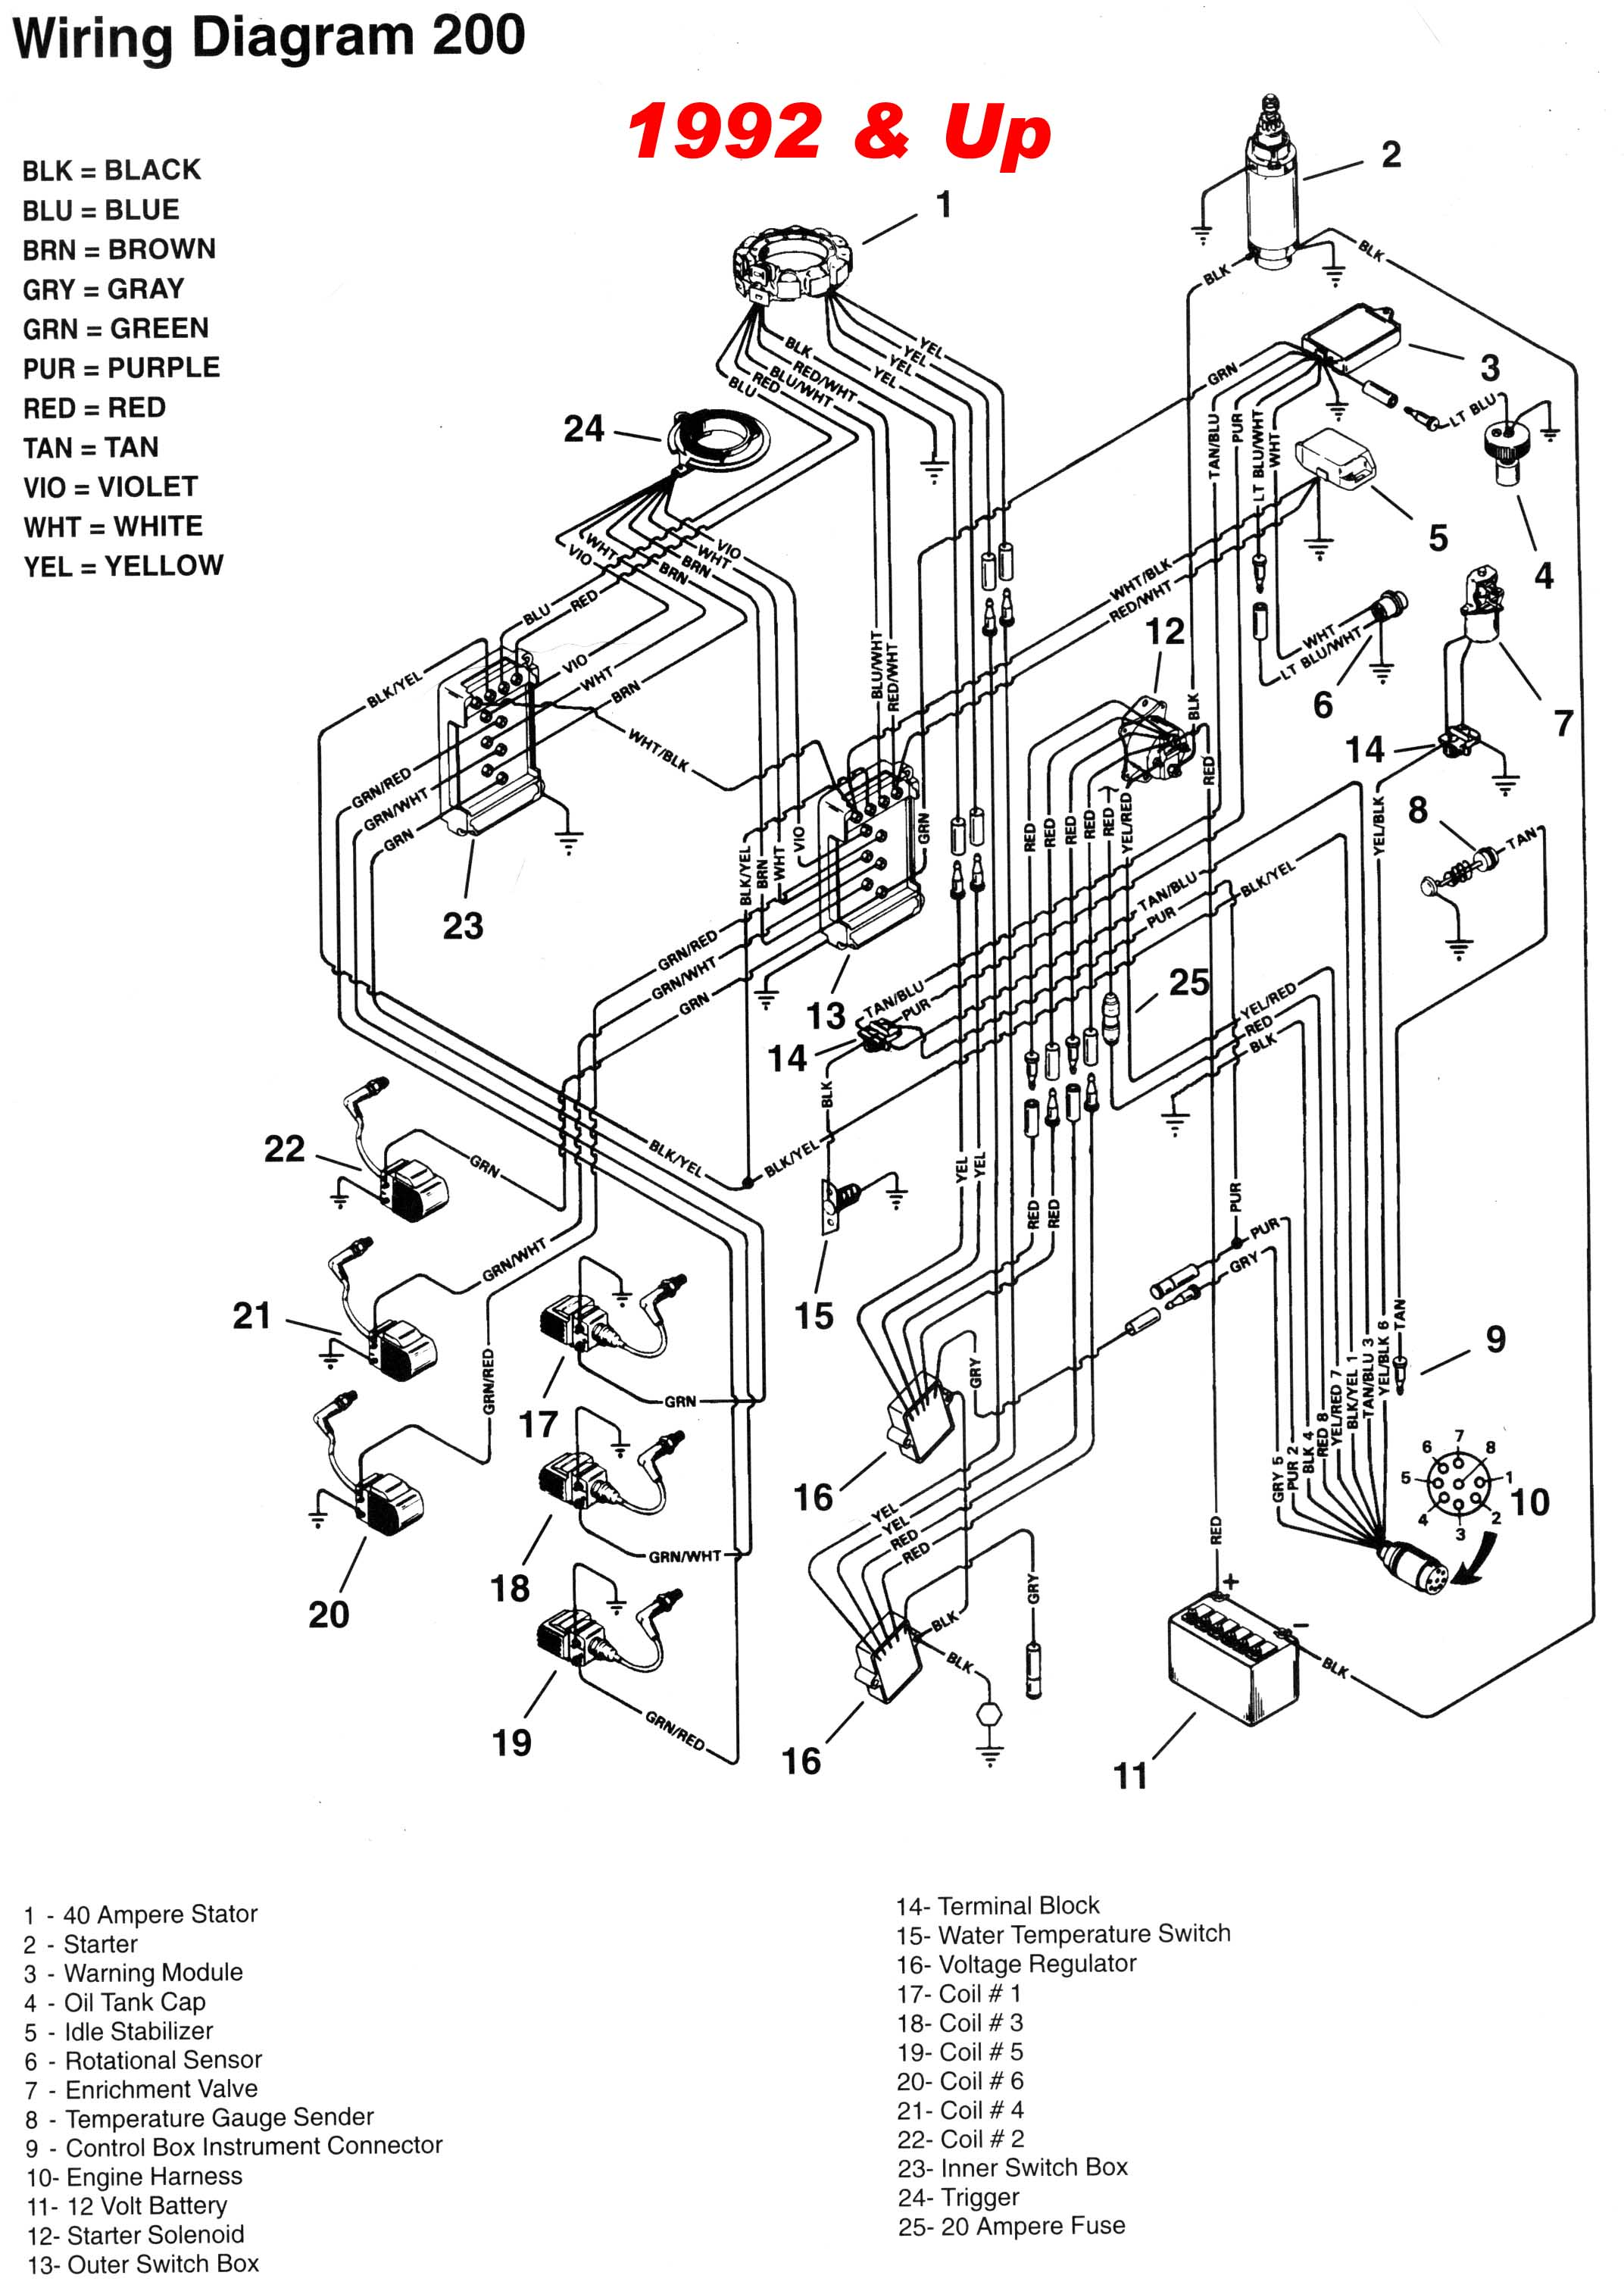 Volvo Marine Engine Diagram Free Download Wiring Diagram Schematic